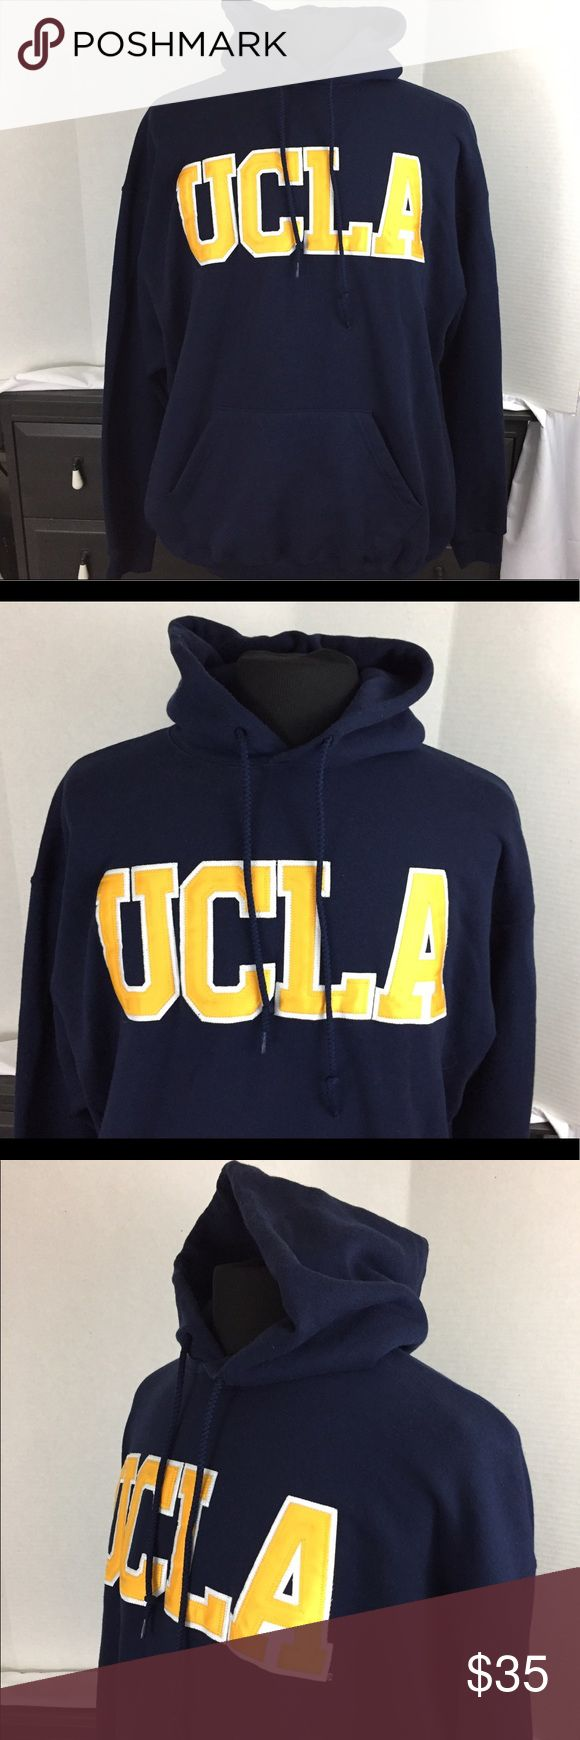 UCLA university hoodie sweatshirt Blue/Gold - 2XL UCLA university hoodie sweatshirt Blue/Gold - 2XL. Gently used in very good condition. Sweaters